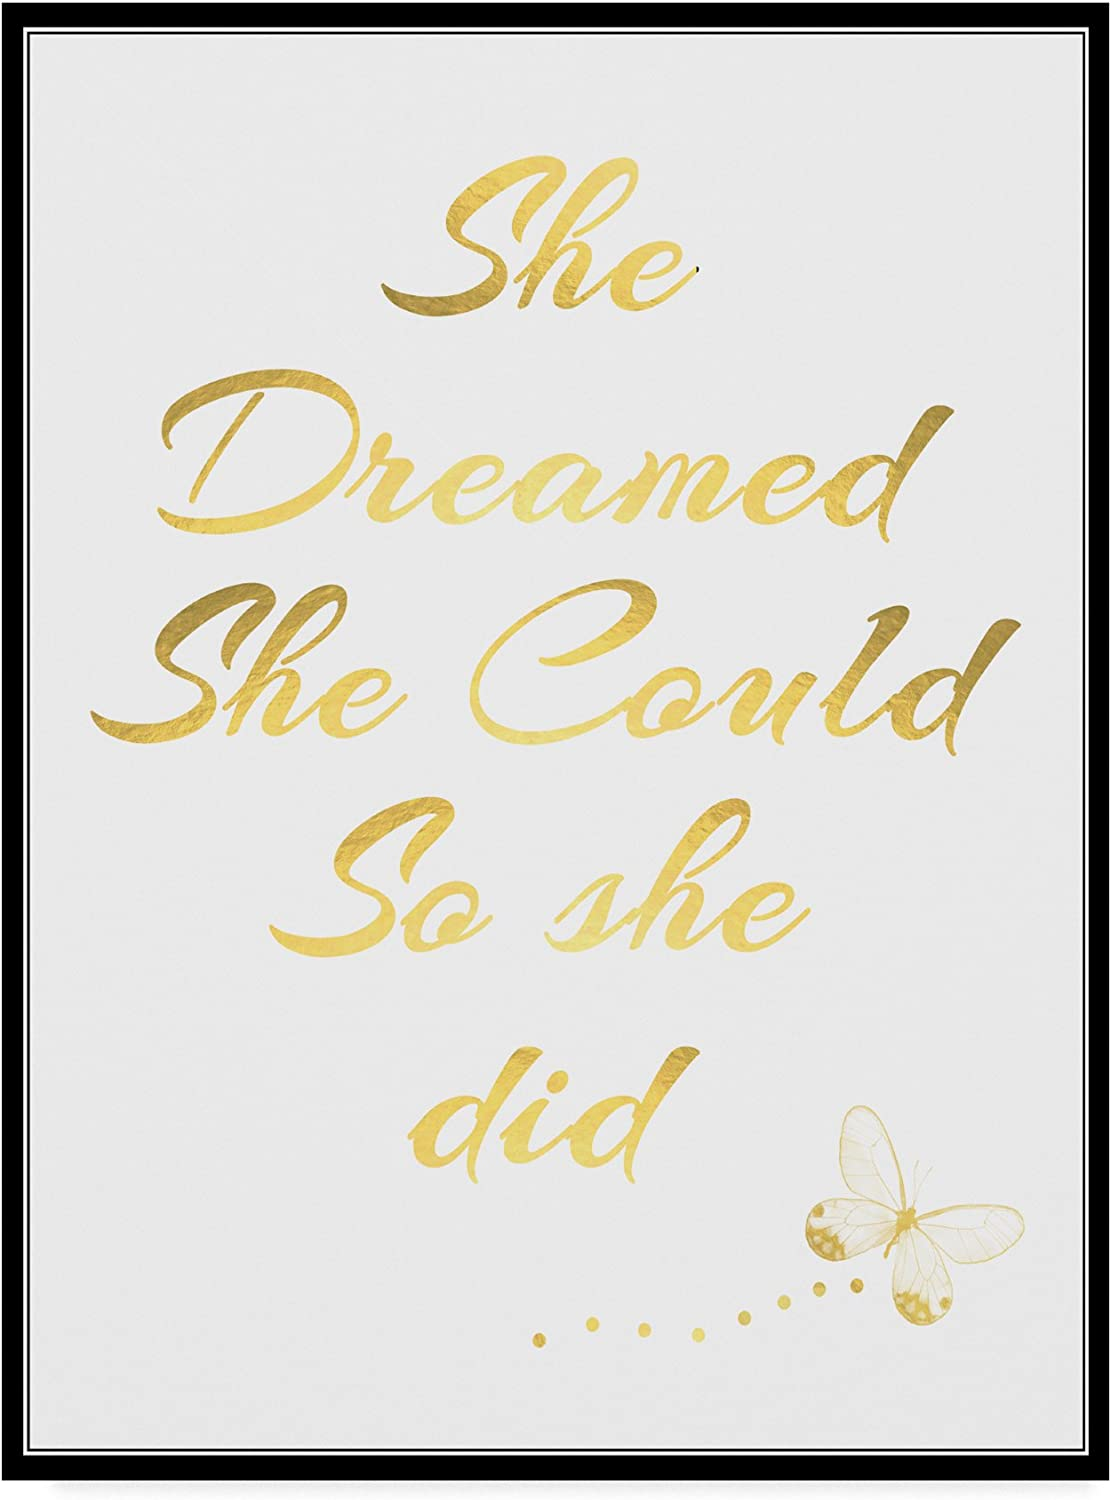 She Dreamed She Could So She did by ALI Chris, 14x19Inch